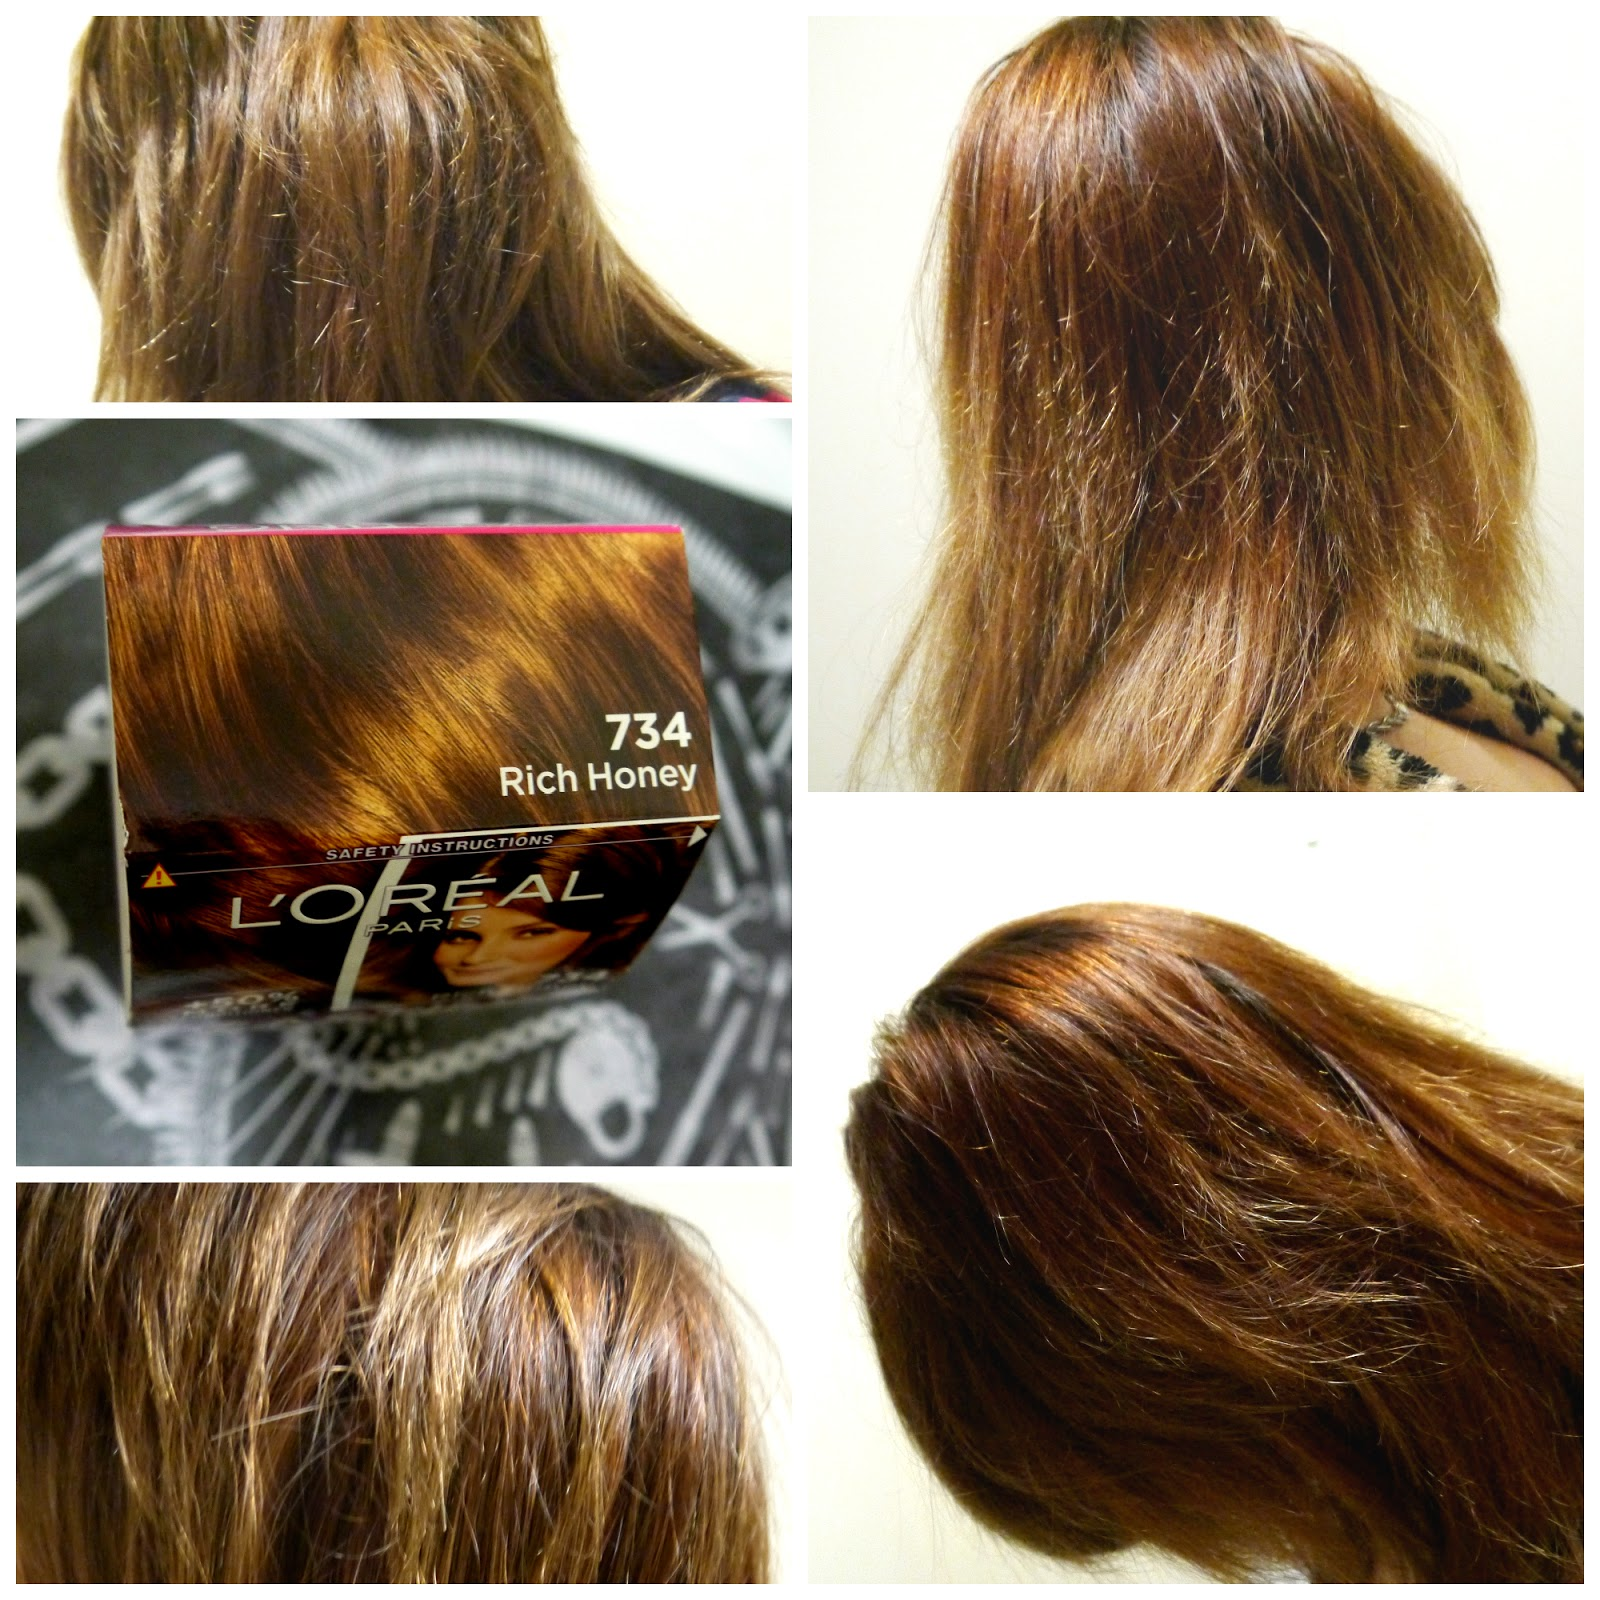 REVIEW // L'OREAL CASTING CREME GLOSS HAIR DYE IN ' RICH..